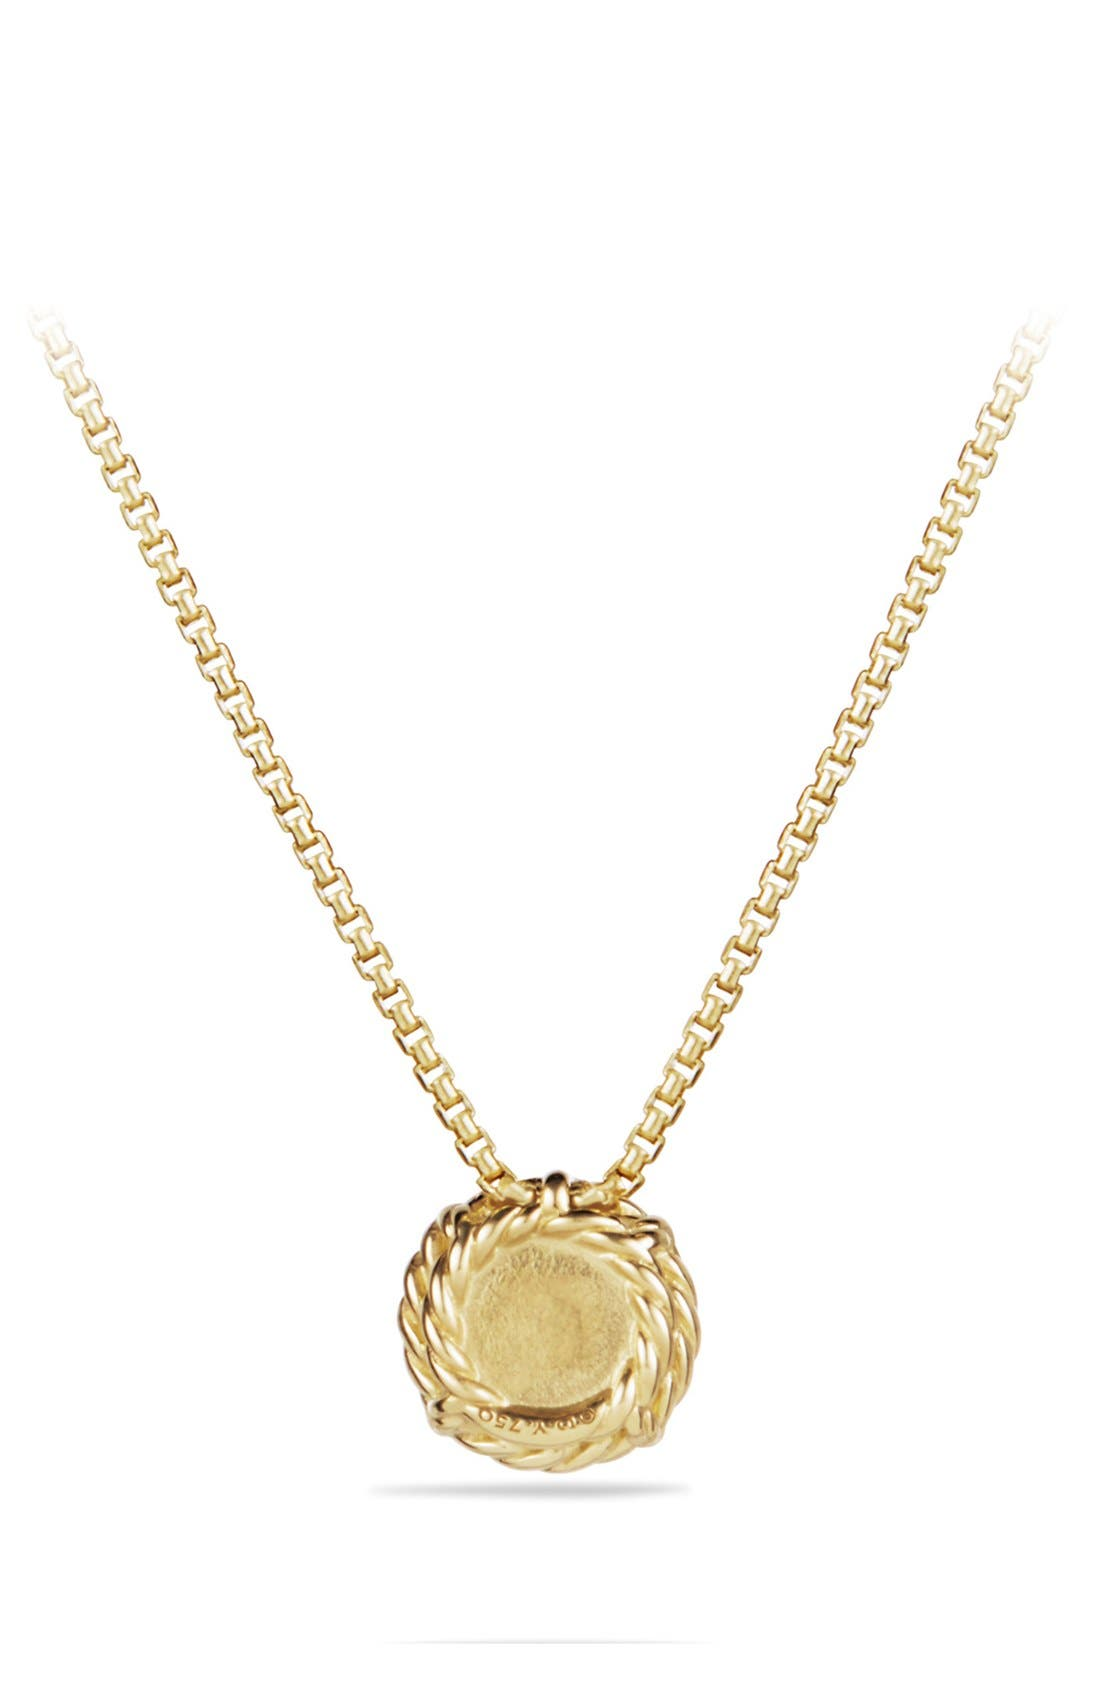 DAVID YURMAN,                             'Châtelaine' Pendant Necklace with Freshwater Pearl in 18K Gold,                             Alternate thumbnail 2, color,                             900